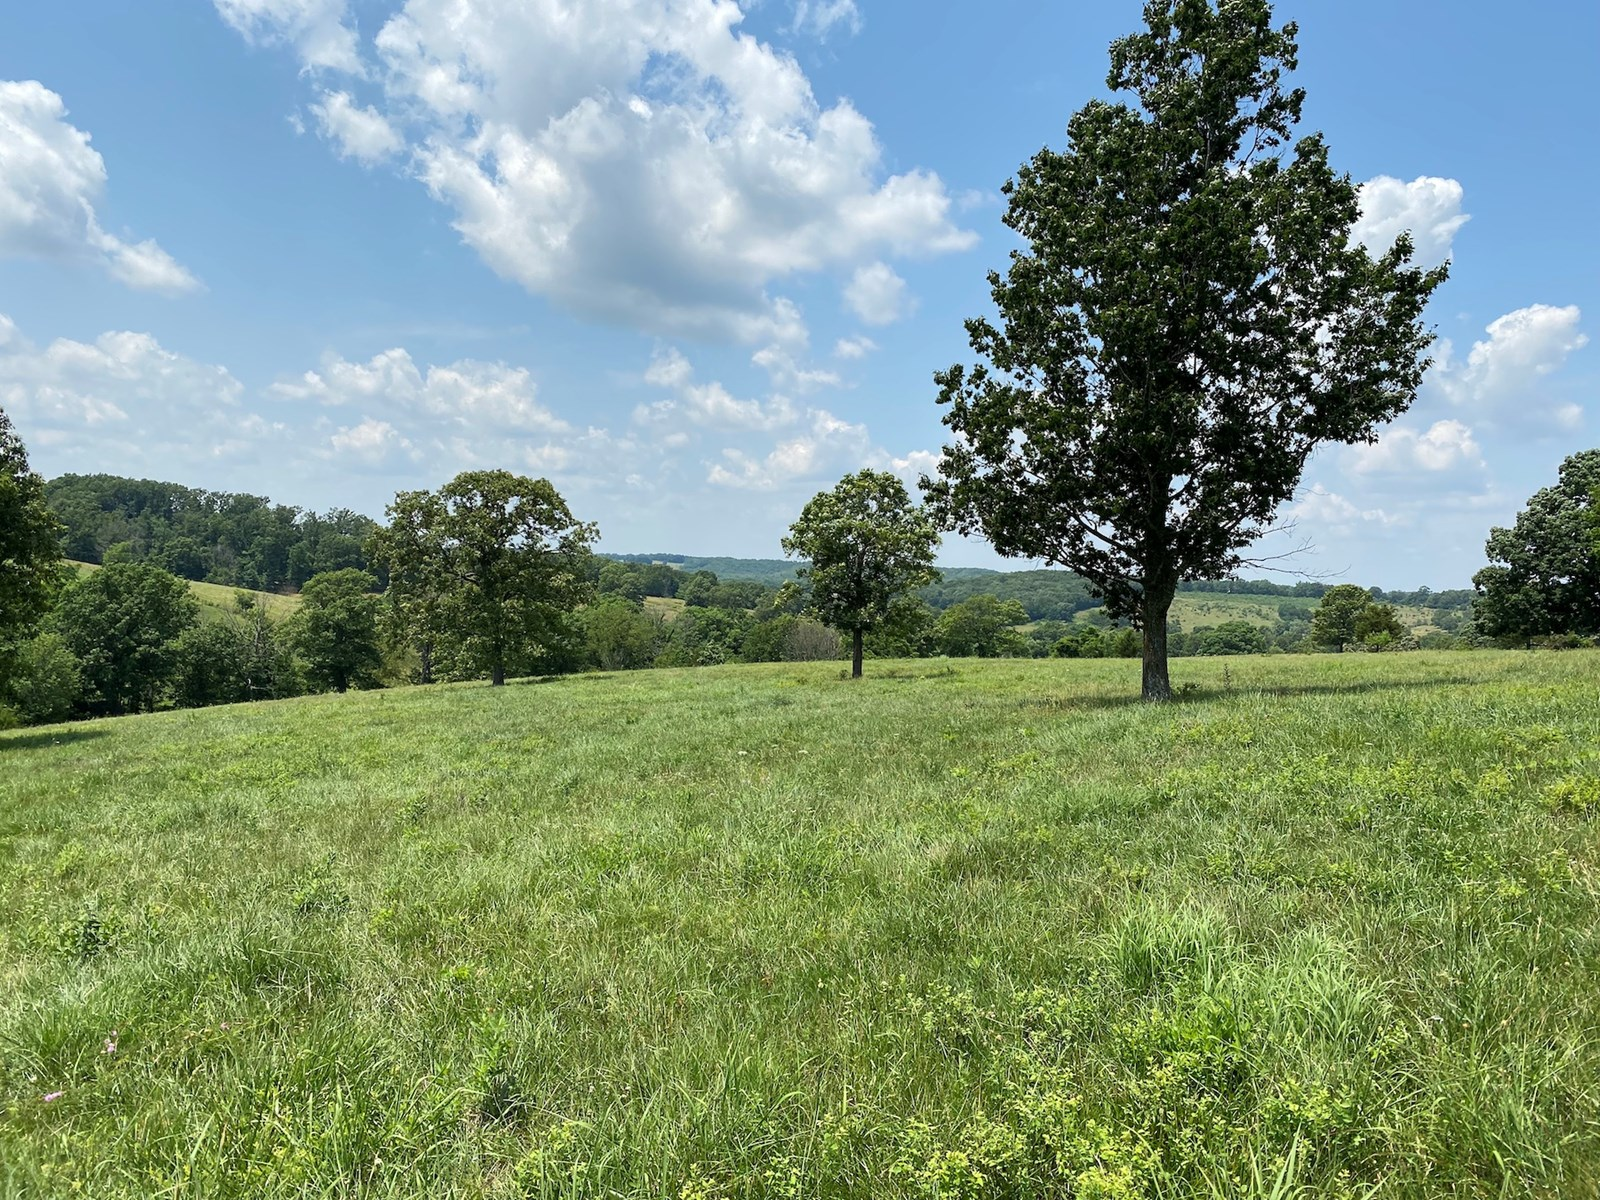 Southern Missouri Cattle Ranch for Sale - Brick Home